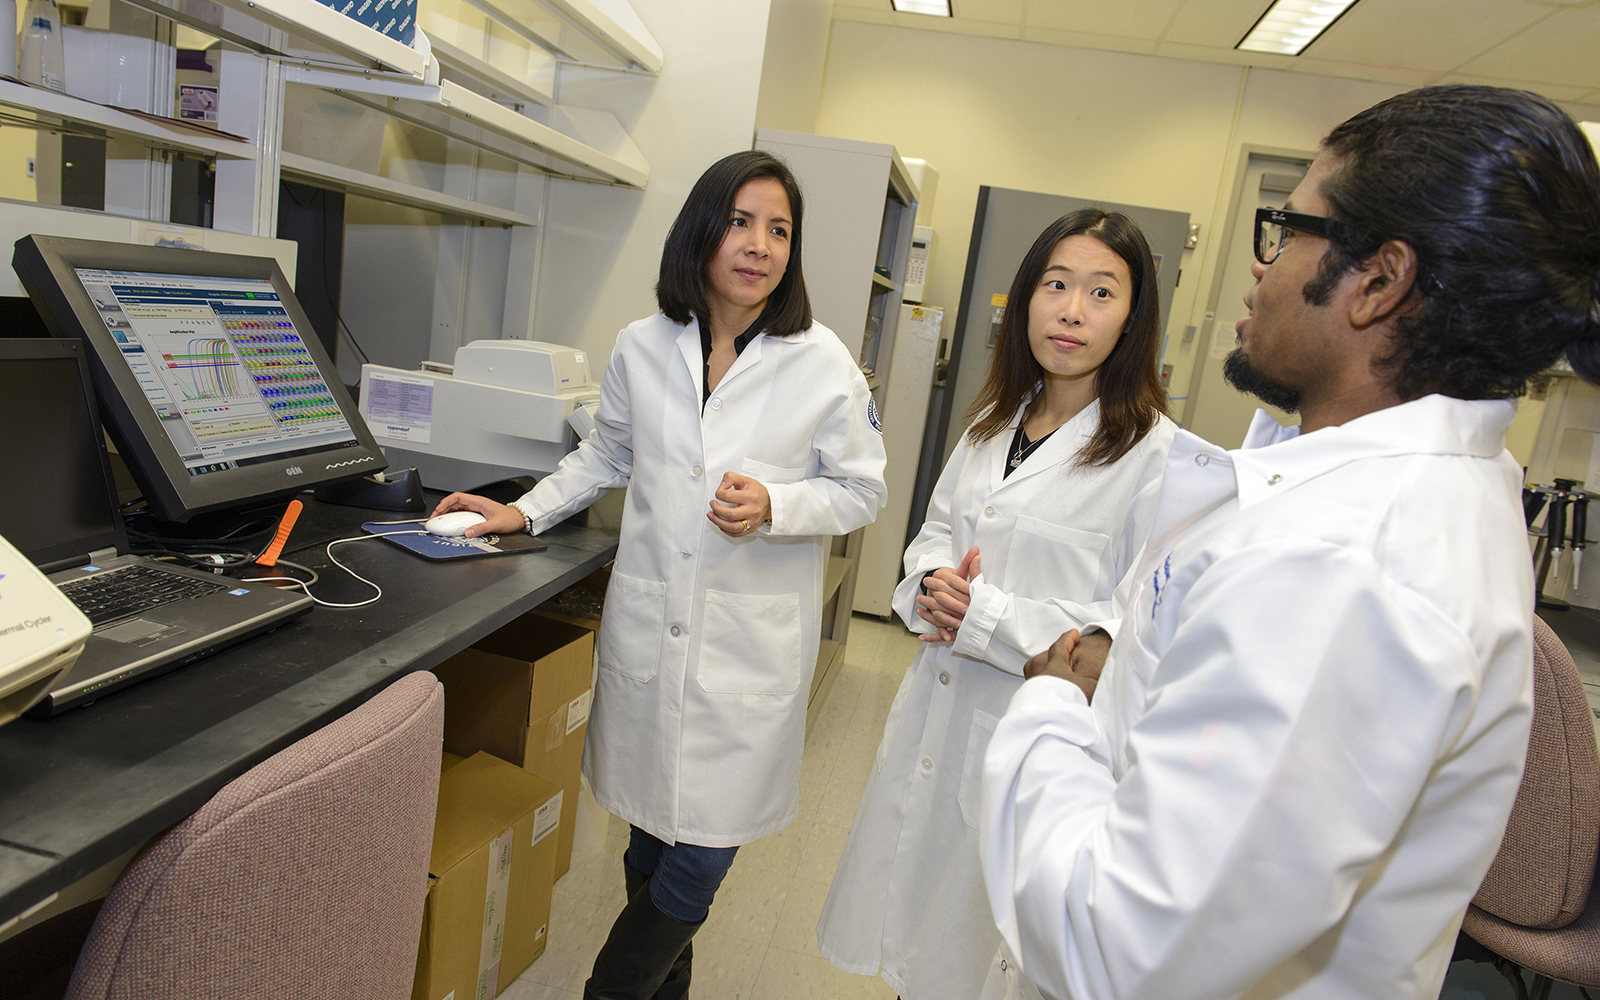 Denisse Tafur, Huakang Huang and Dinesh Babu Uthaya Kumar are UConn Graduate School students studying biomedical science who completed advanced training in translational research at the NIH's Clinical Center this summer (UConn Health/Janine Gelineau).